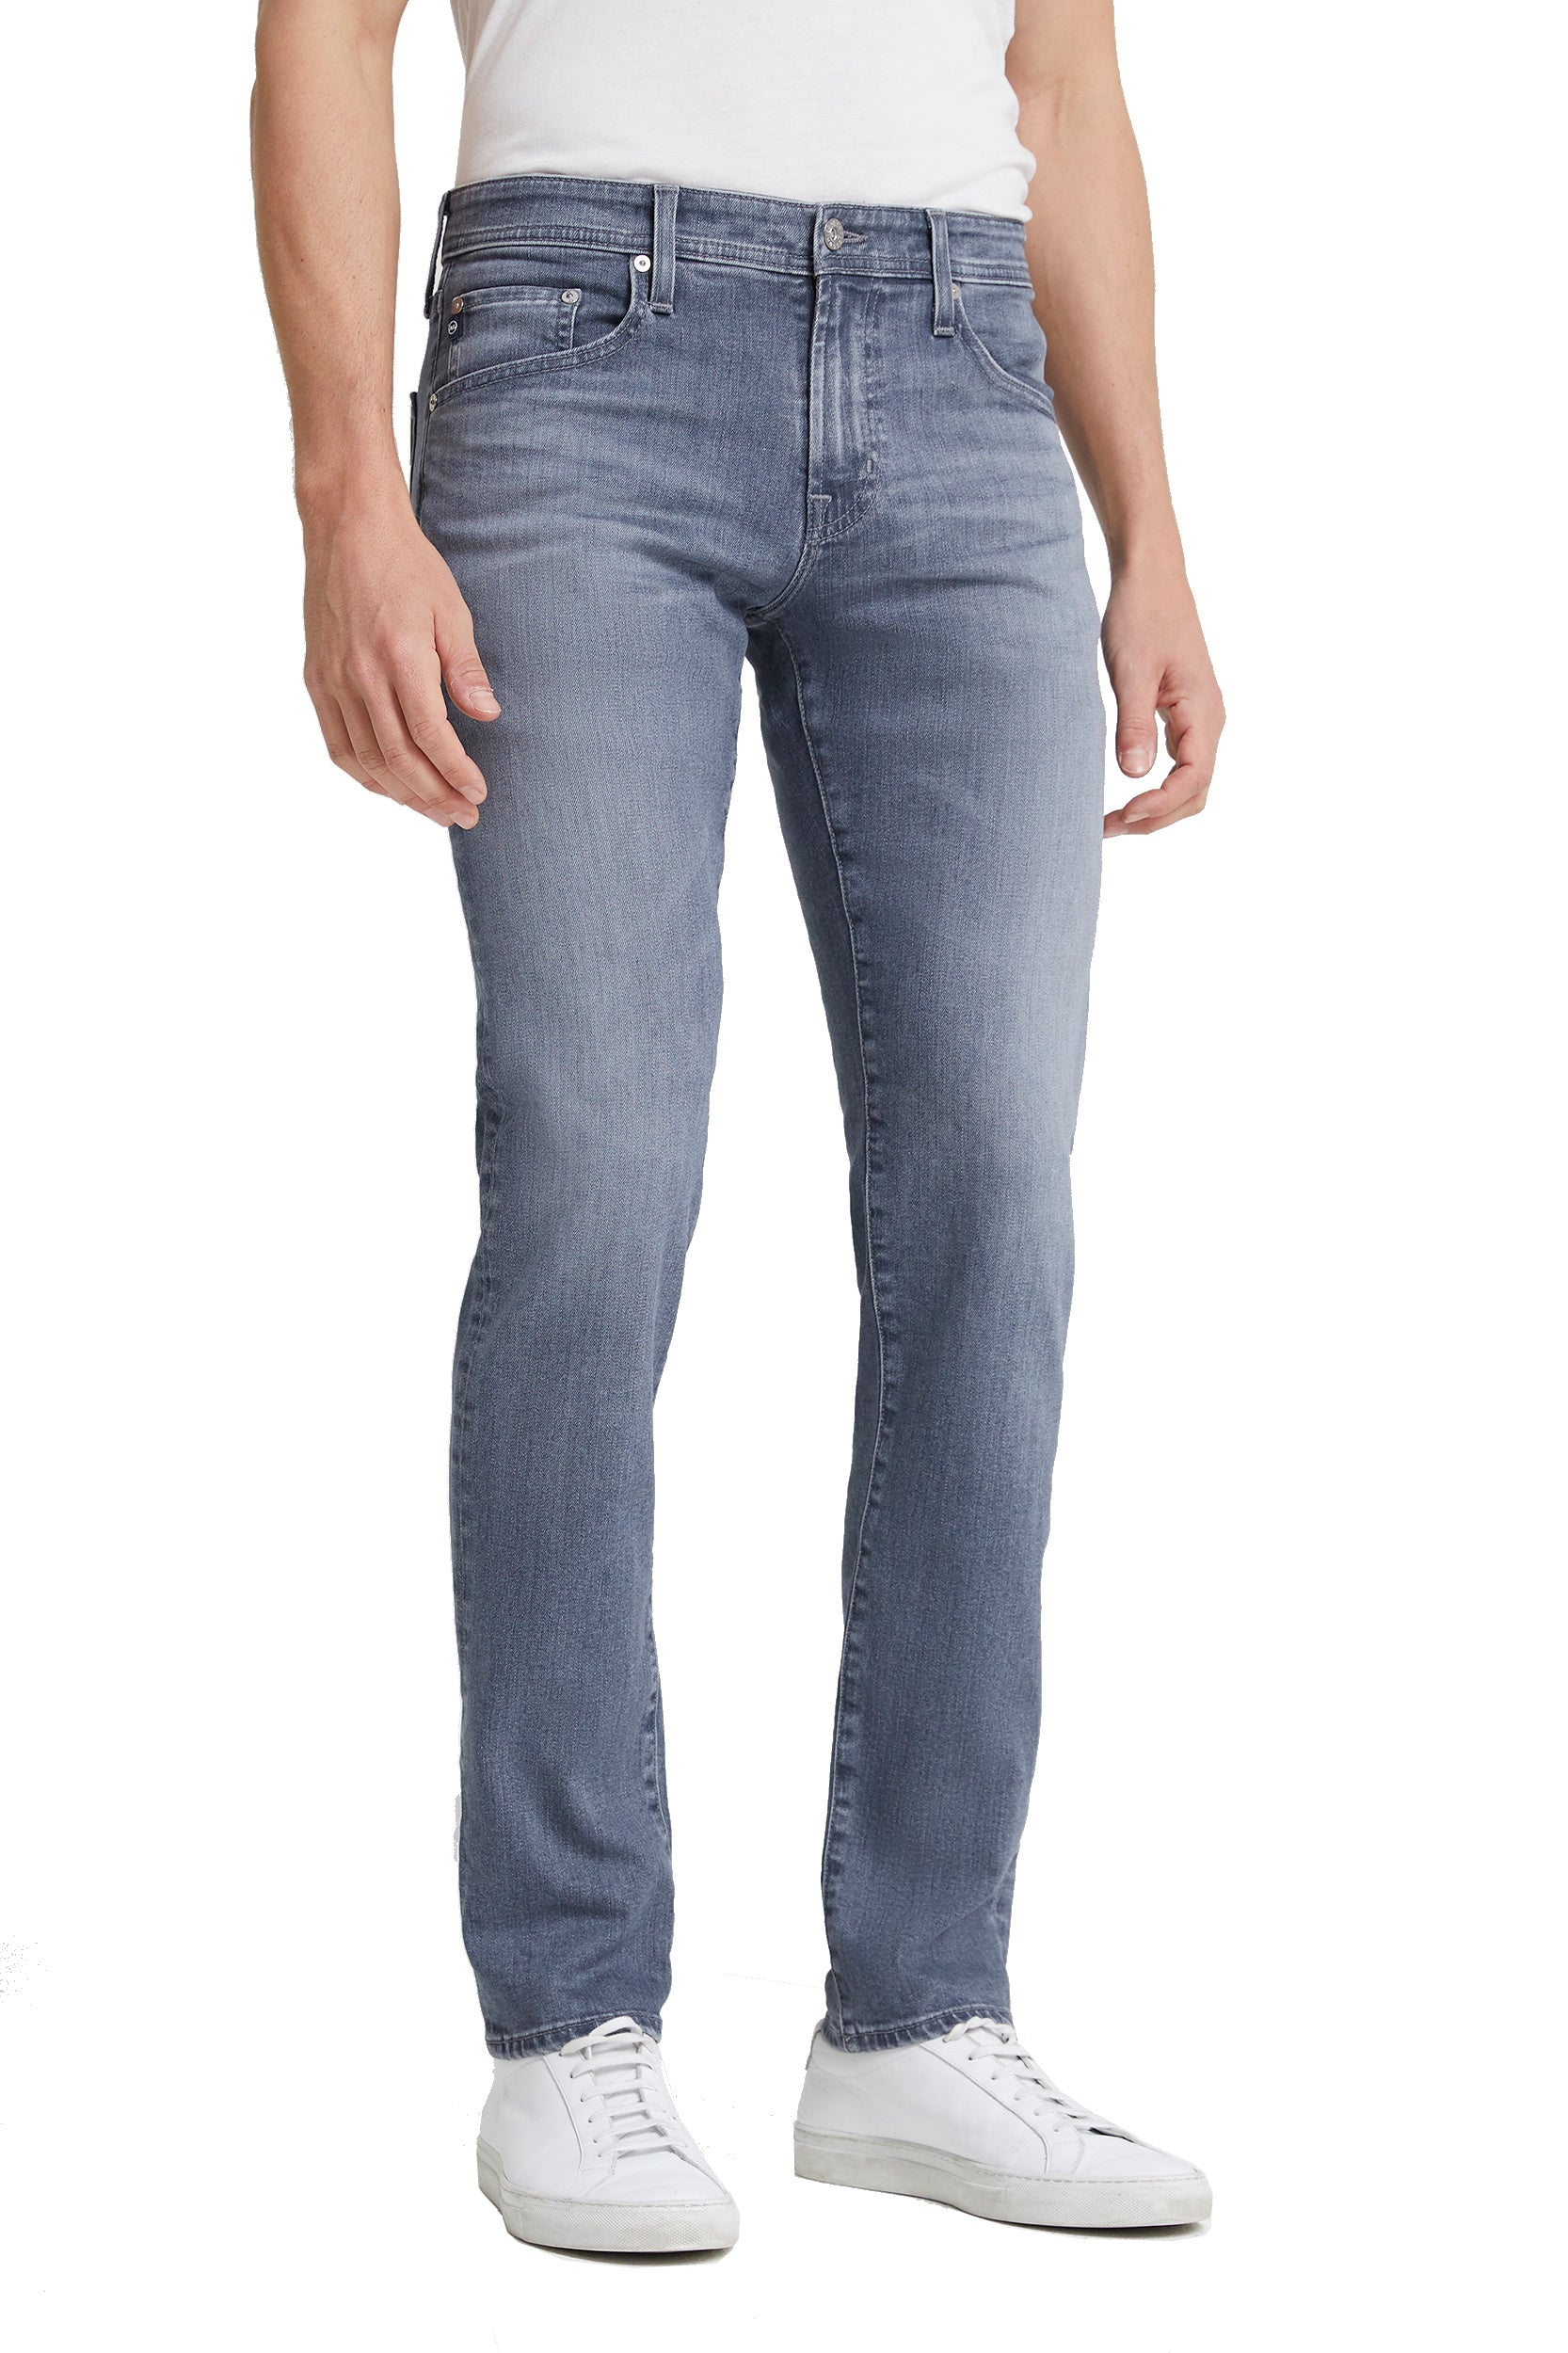 AG Adriano Goldschmied Tellis Modern Slim Light Wash Jeans